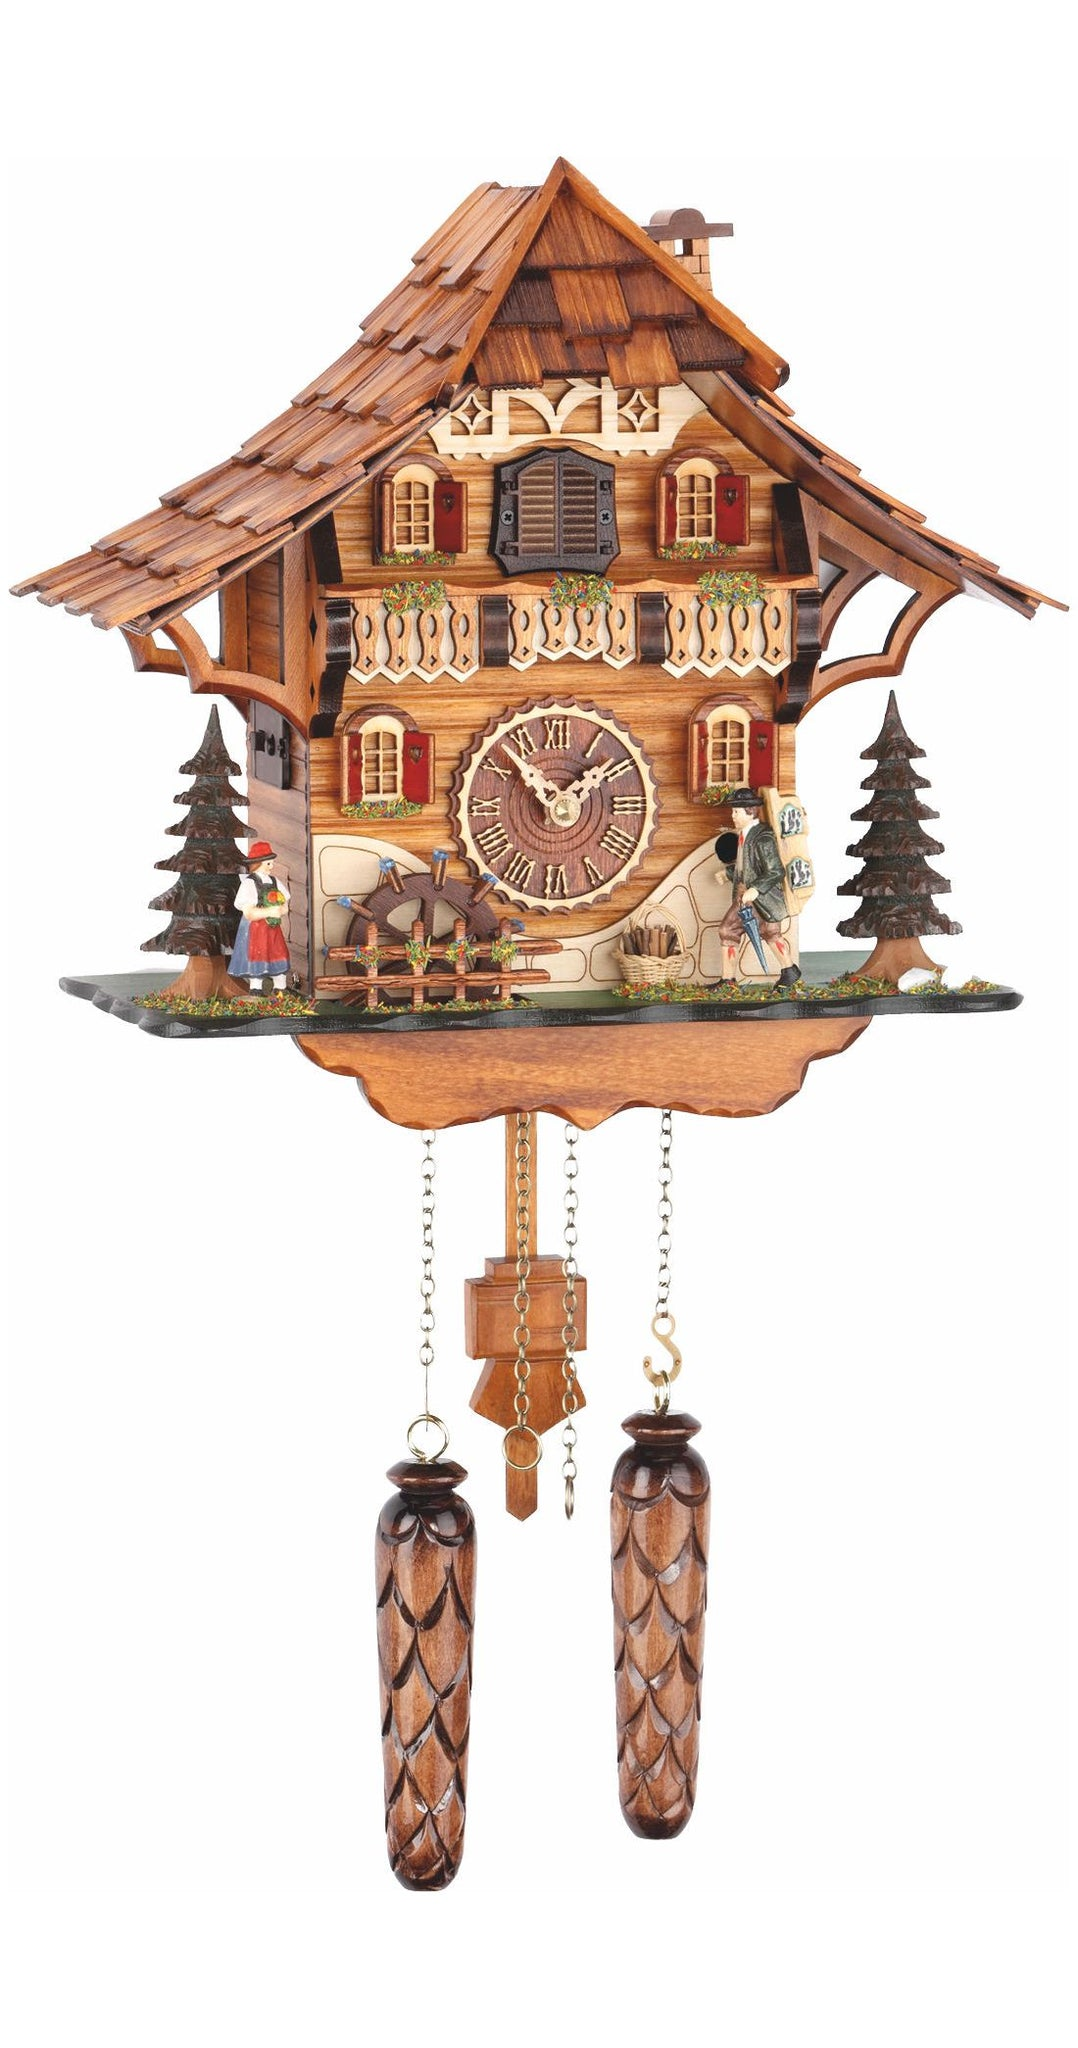 Quartz Cuckoo Clock Black Forest House Clock Peddler and Wheel Music - Cuckoo Clock Meister